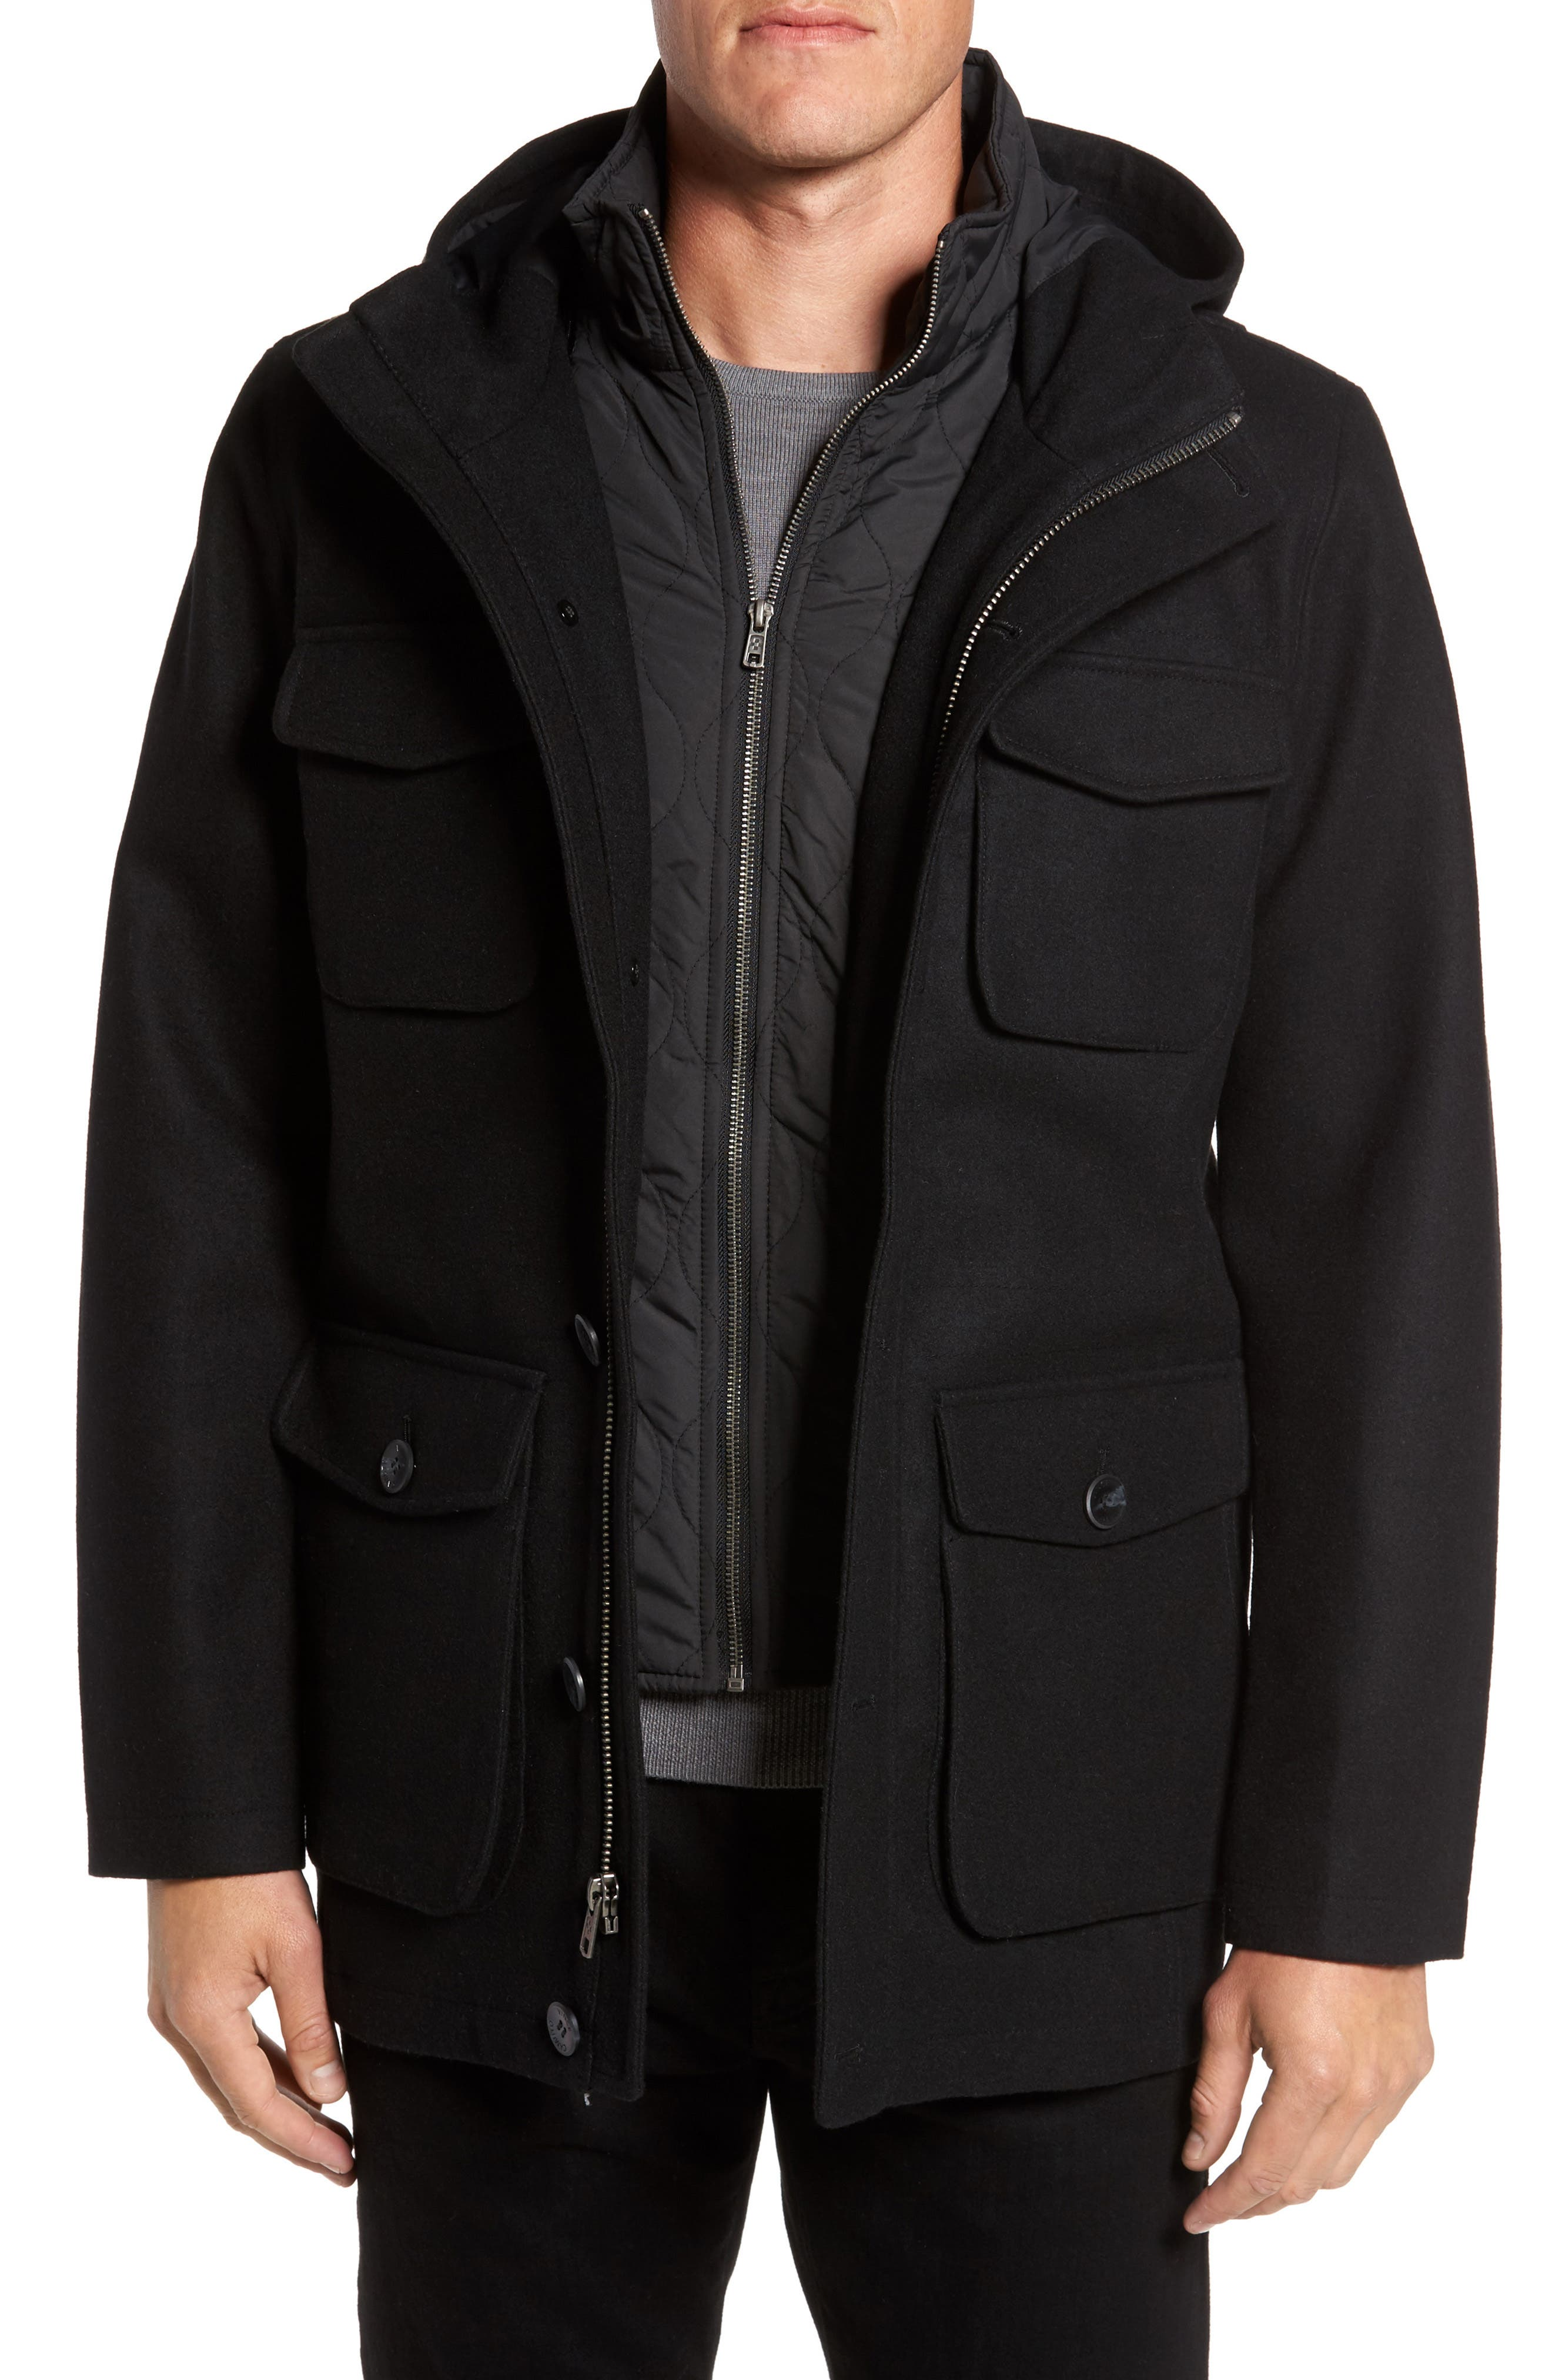 Hooded Jacket with Removable Bib,                         Main,                         color, 001